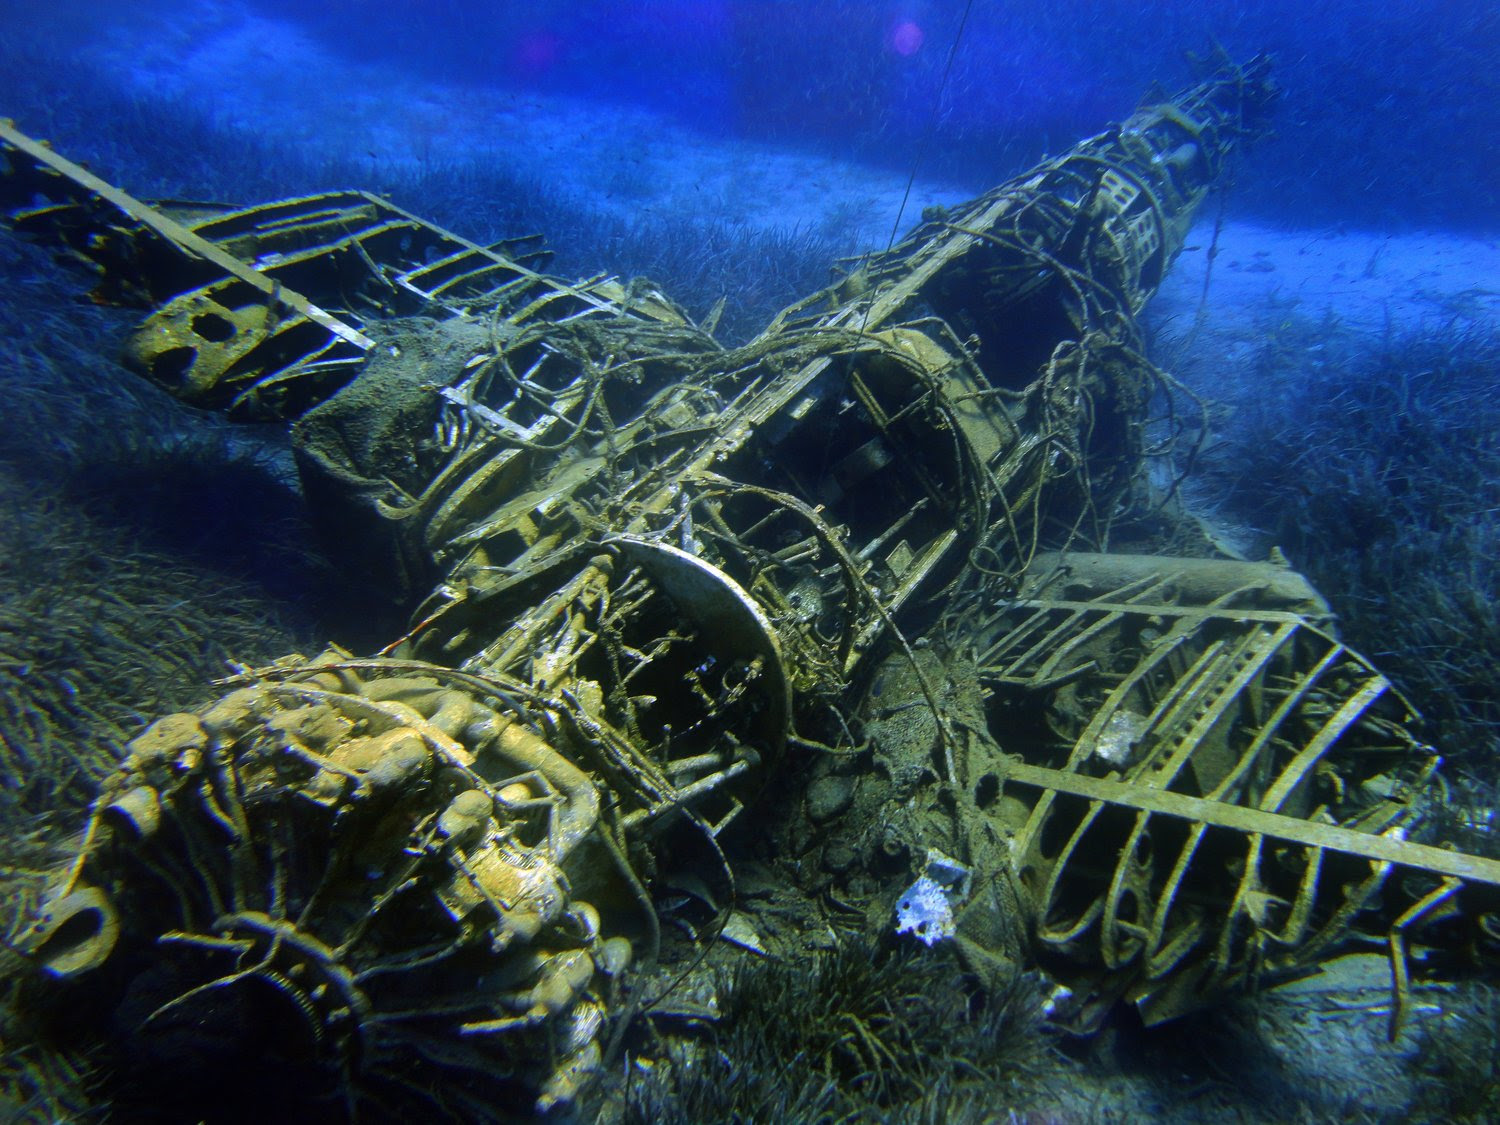 Amazing dive sites can be accessed via Liveaboards.